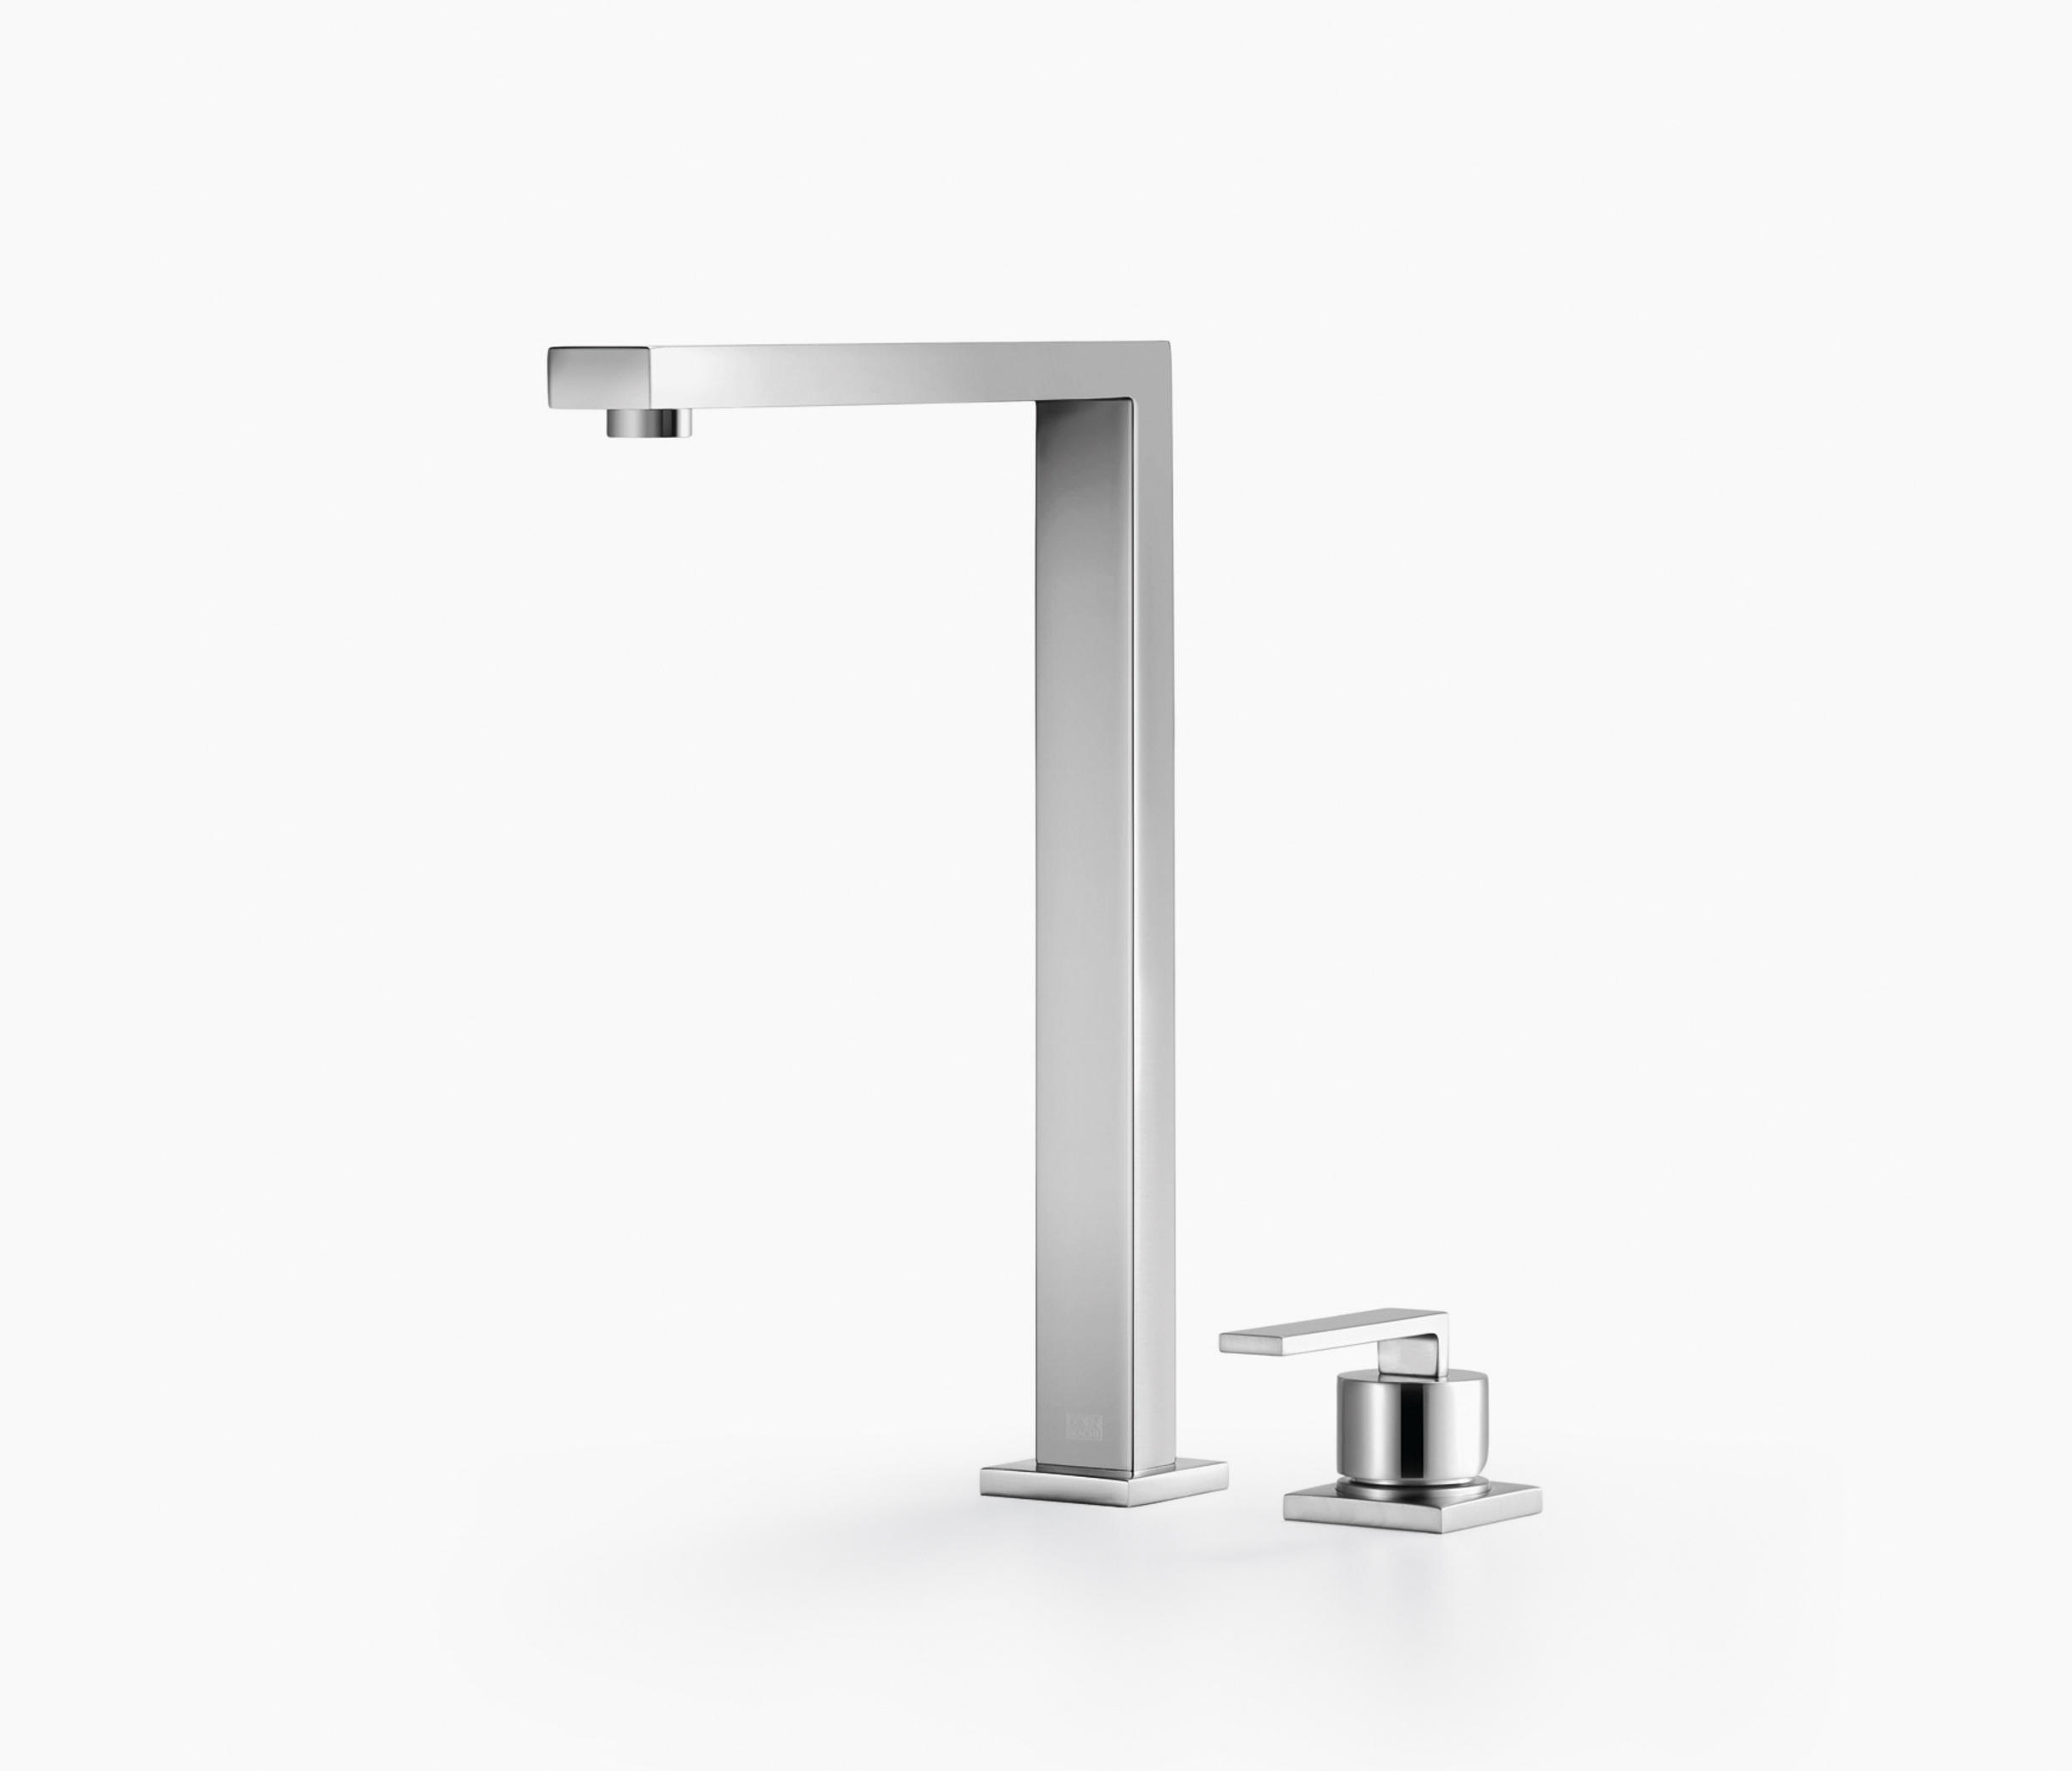 KITCHEN TAPS - High quality designer KITCHEN TAPS | Architonic